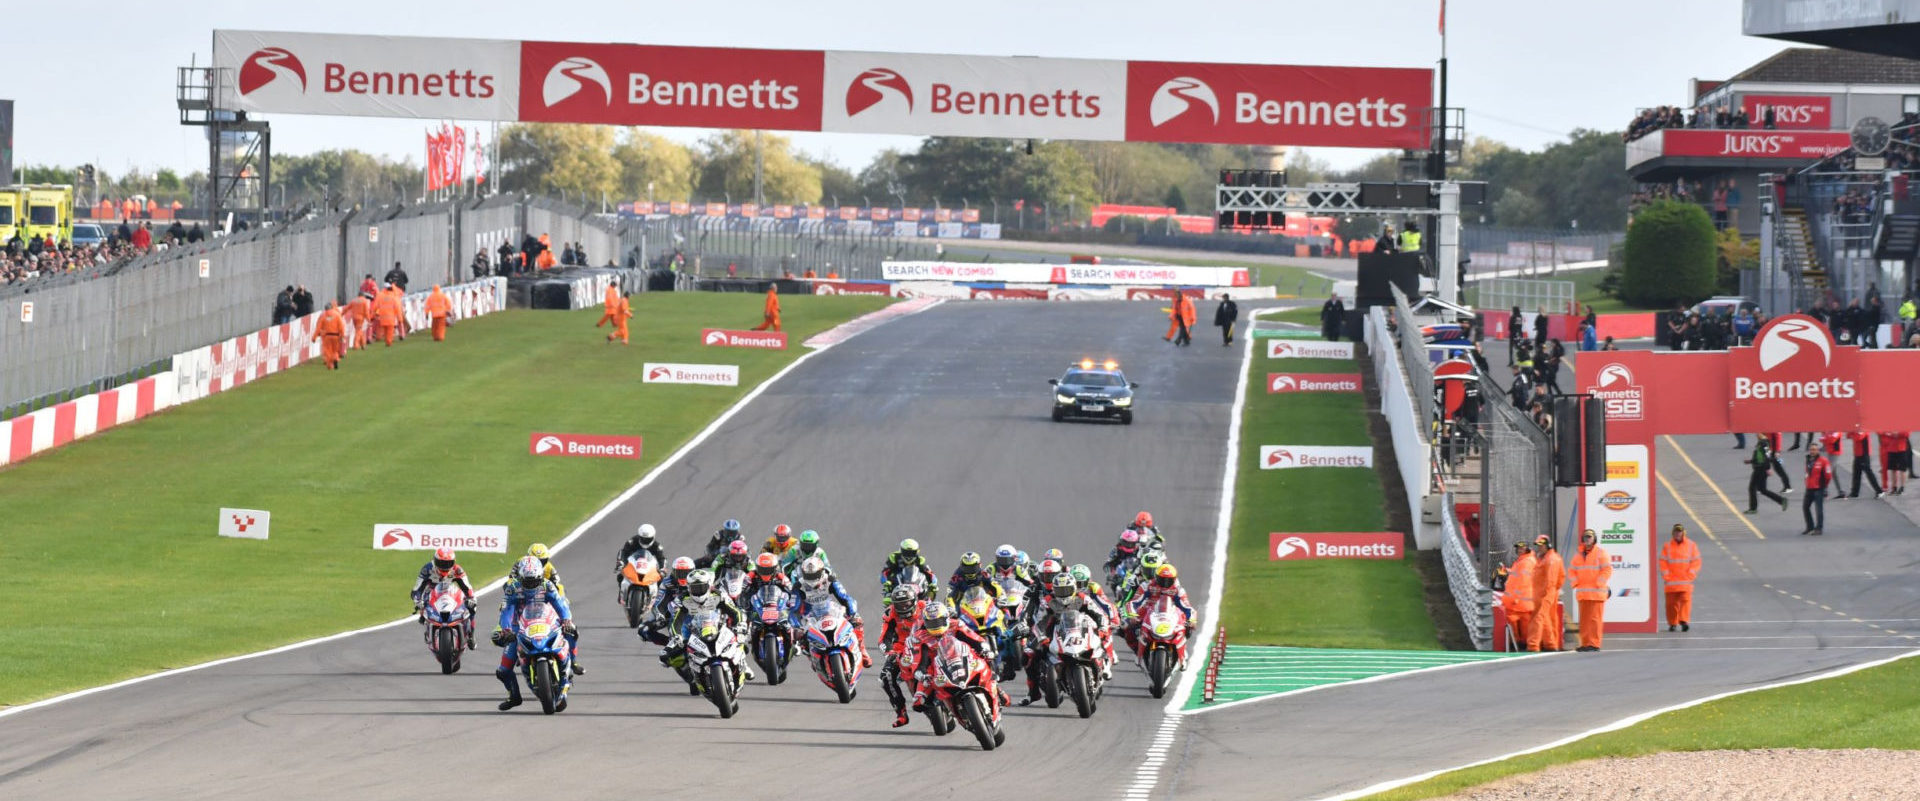 The start of a British Superbike race at Donington Park.